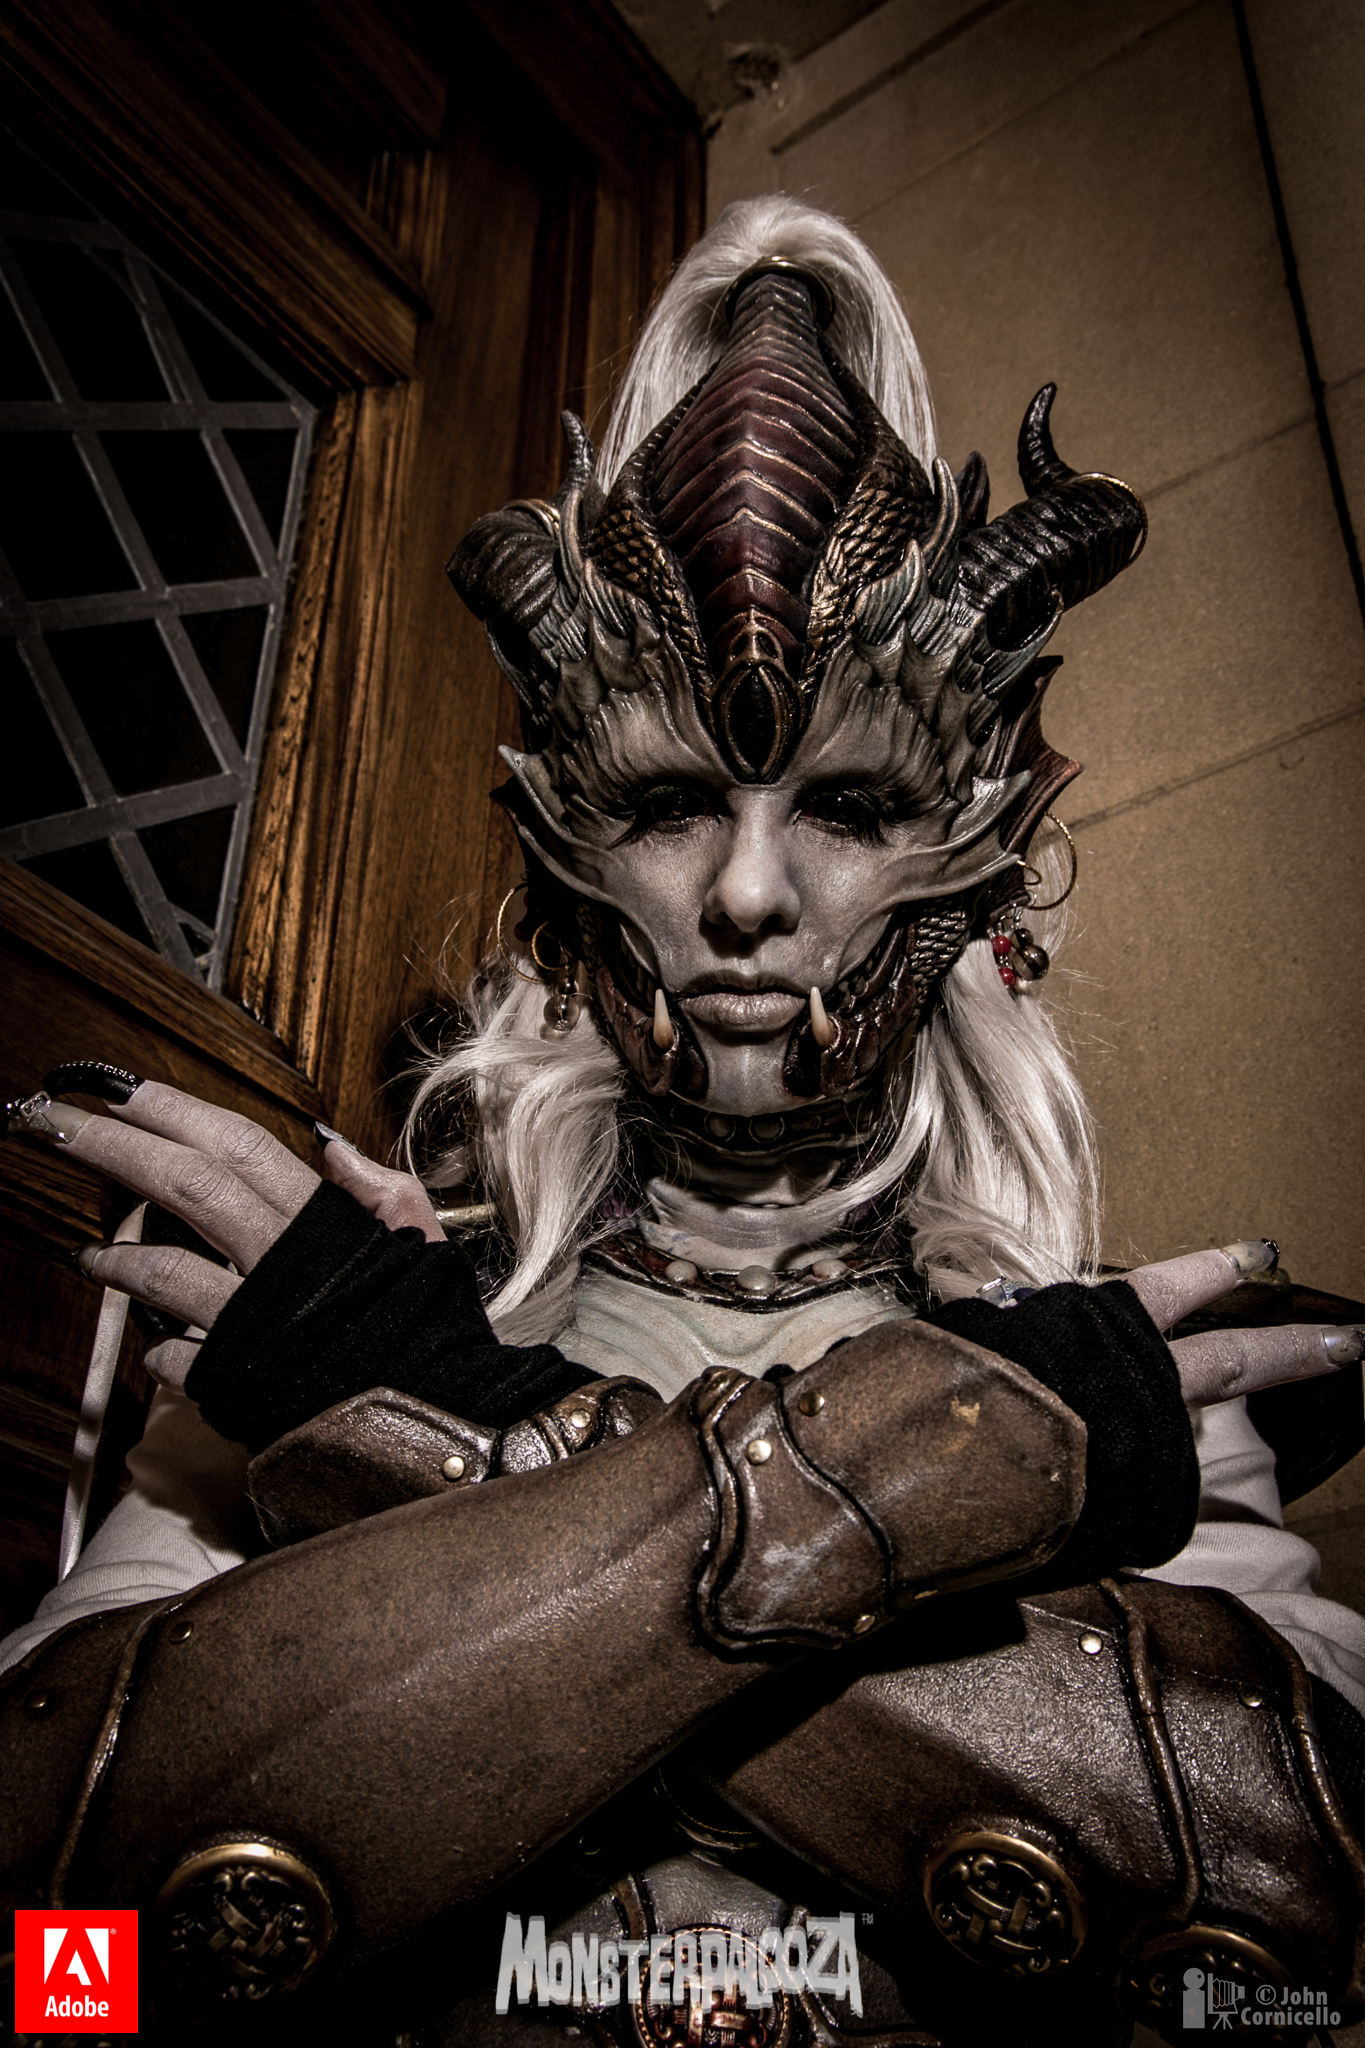 monsterpalooza-2017-1347 - Copy.jpg